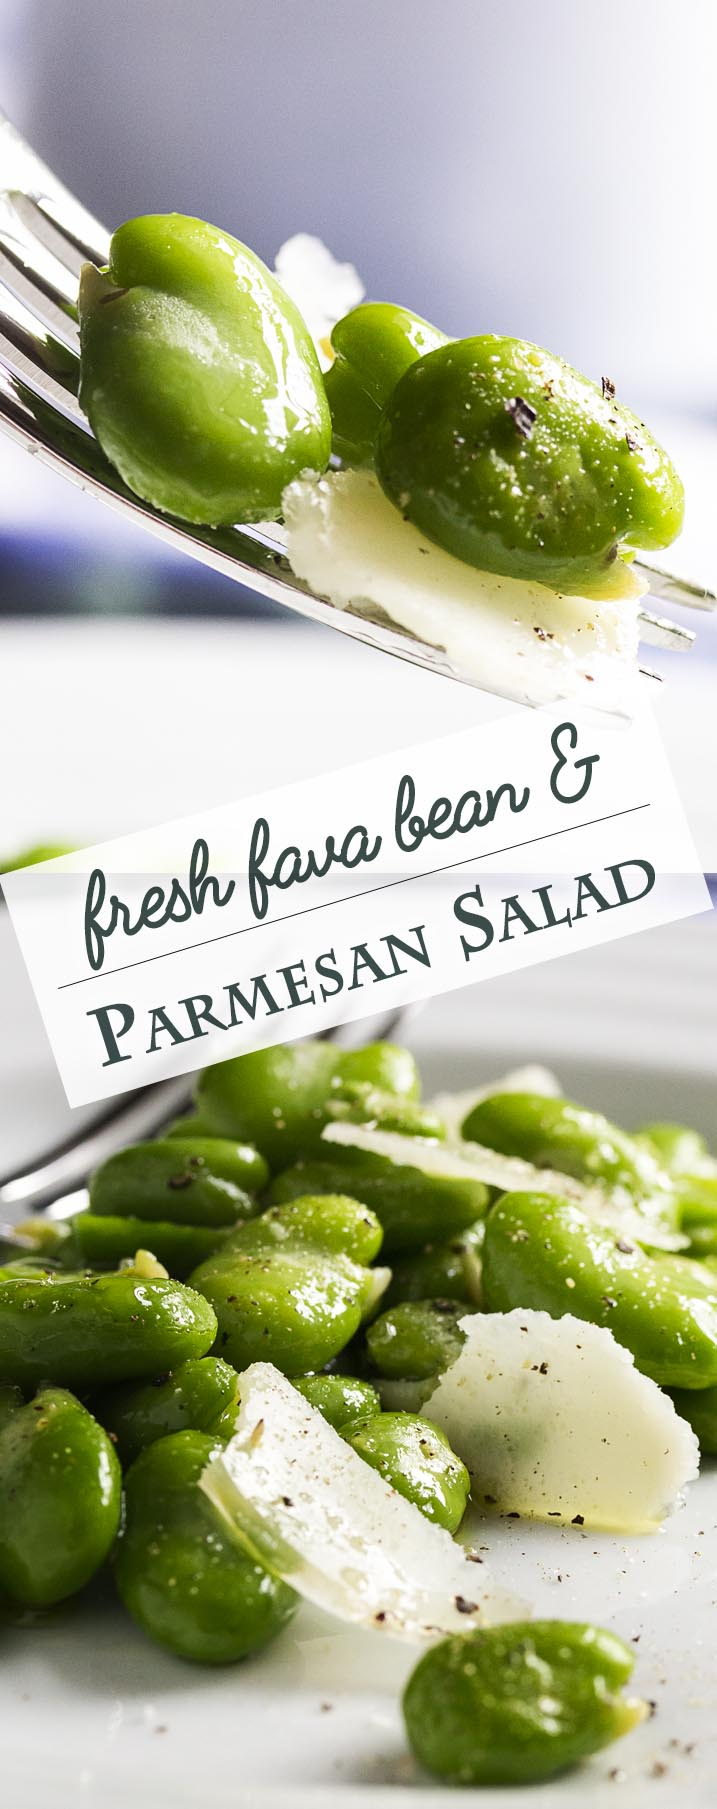 One great way to enjoy fava beans is in this healthy spring inspired fresh fava bean and parmesan salad, which is tossed lightly with a little olive oil and sprinkled with salt and pepper. Simple, but oh so good! | justalittlebitofbacon.com